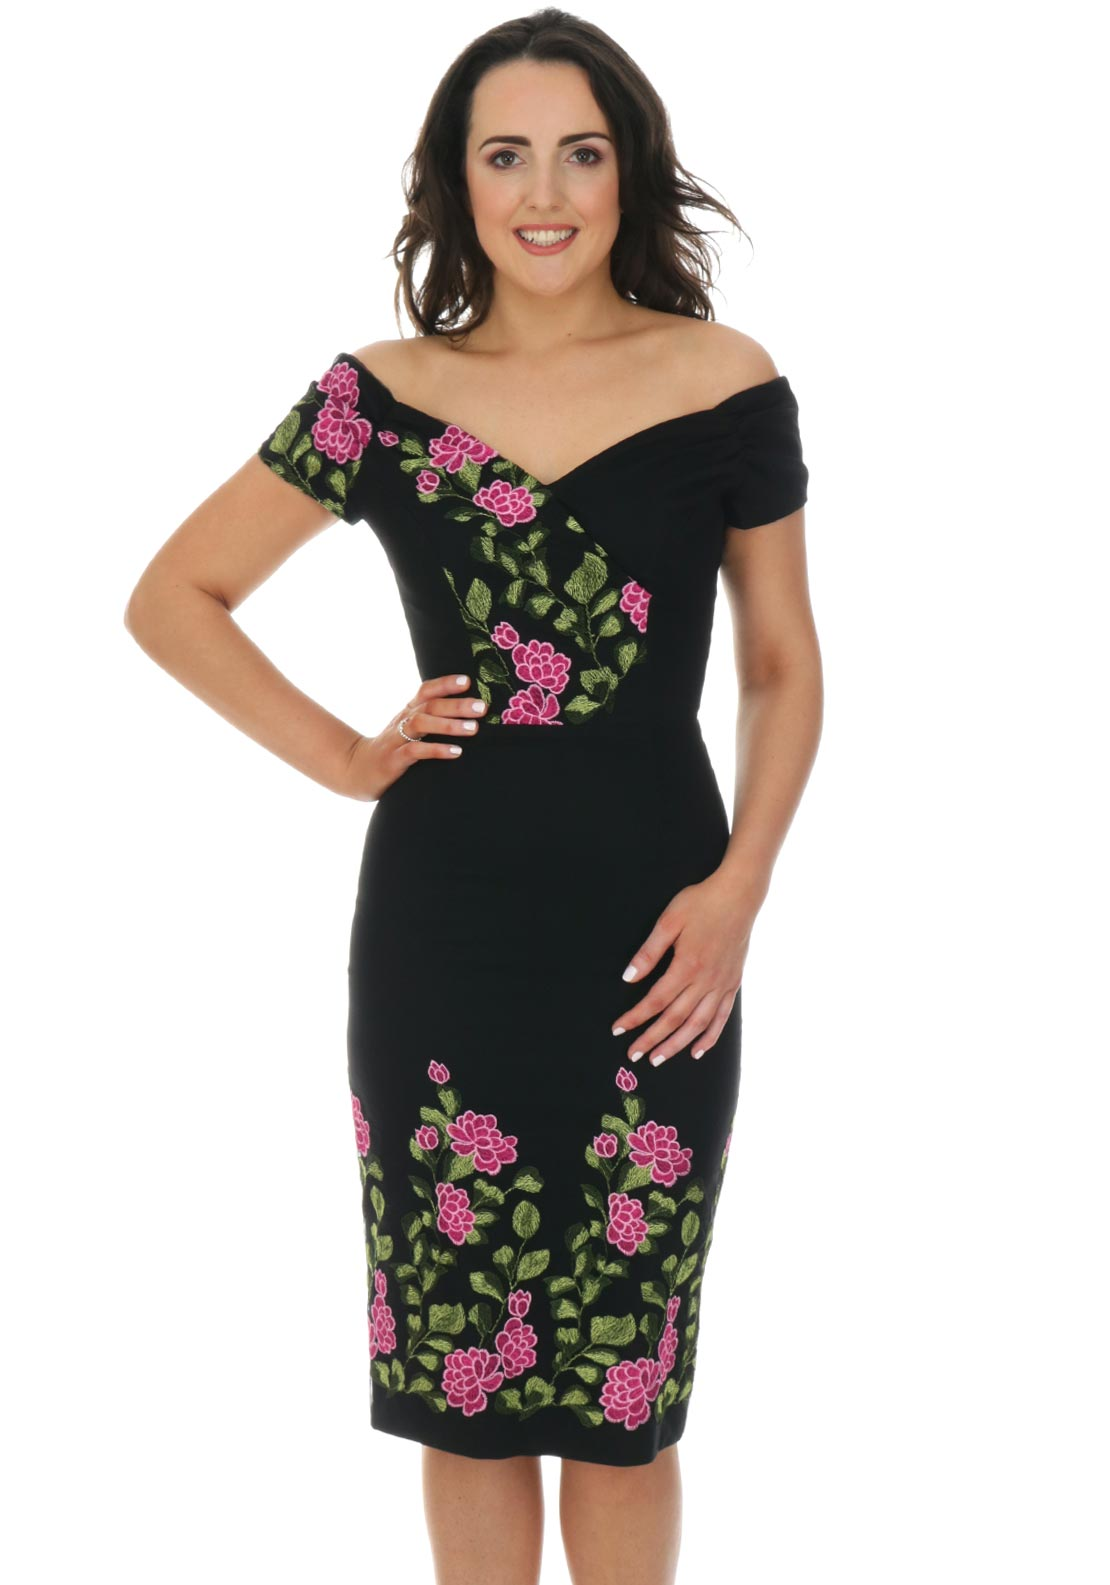 The Pretty Dress Company Fatale Embroidered Dress, Black & Pink